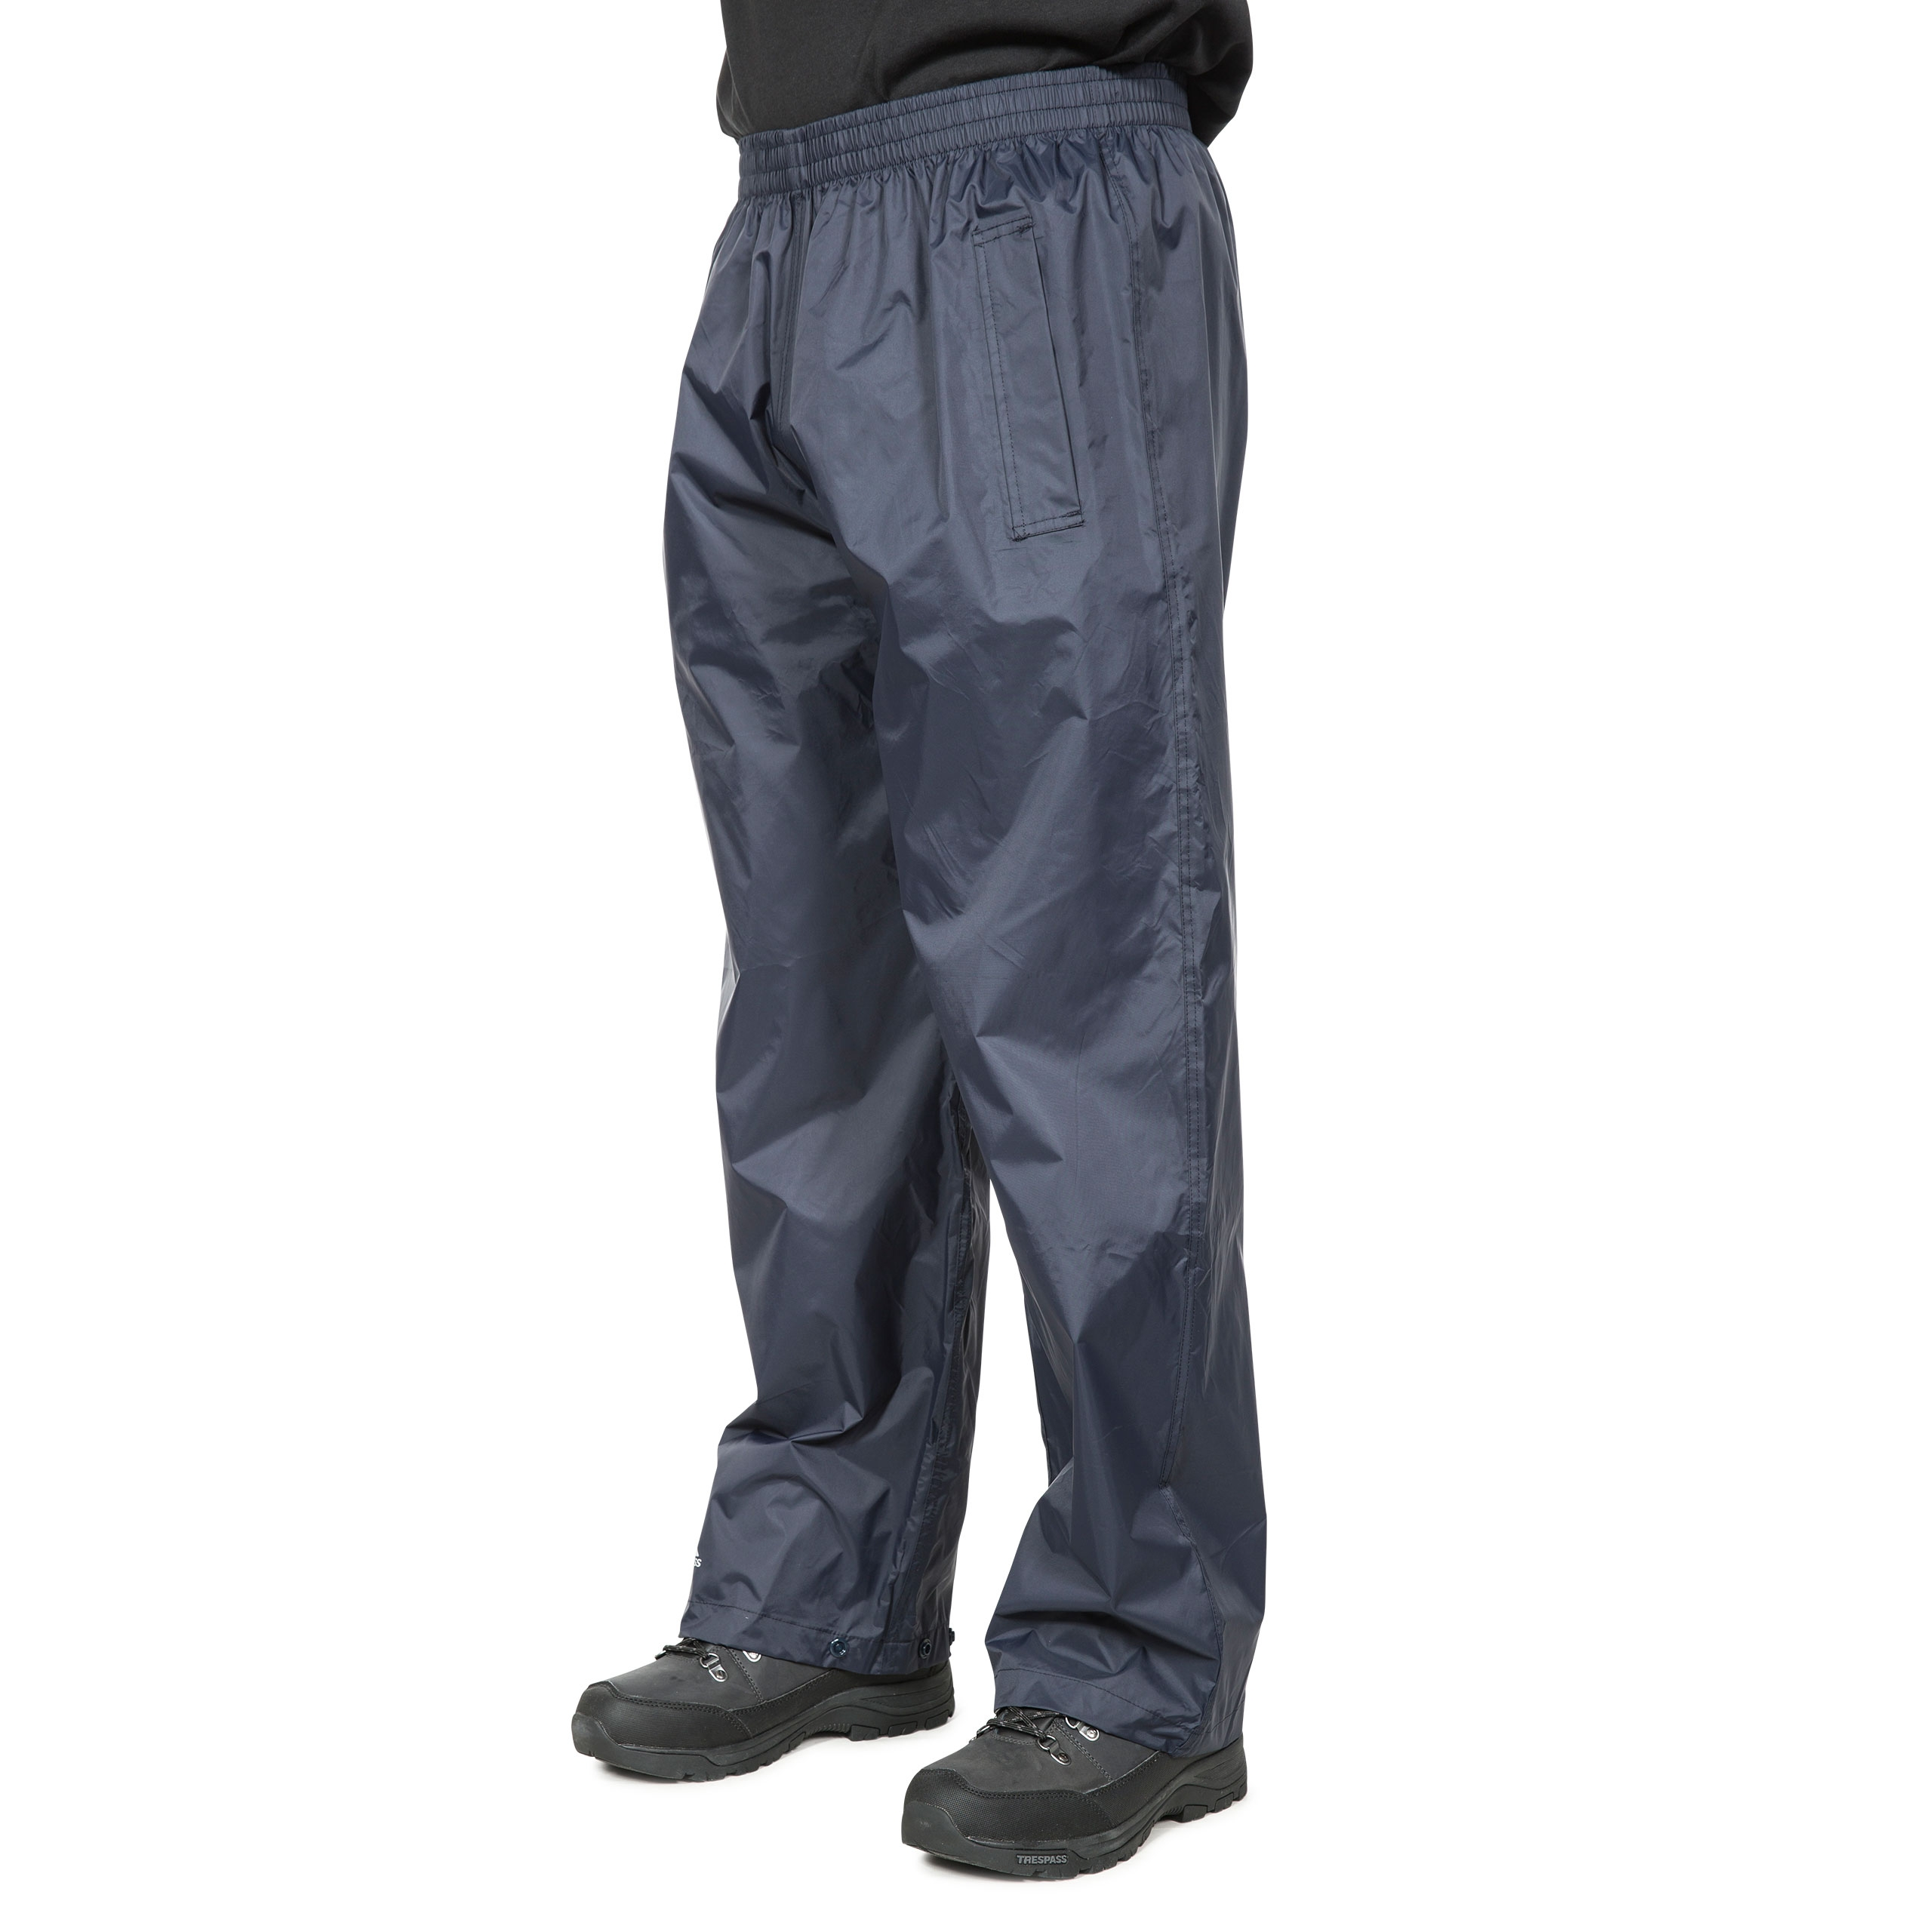 Trespass-Mens-Womens-Waterproof-Trousers-Packaway-Breathable-Qikpac thumbnail 12